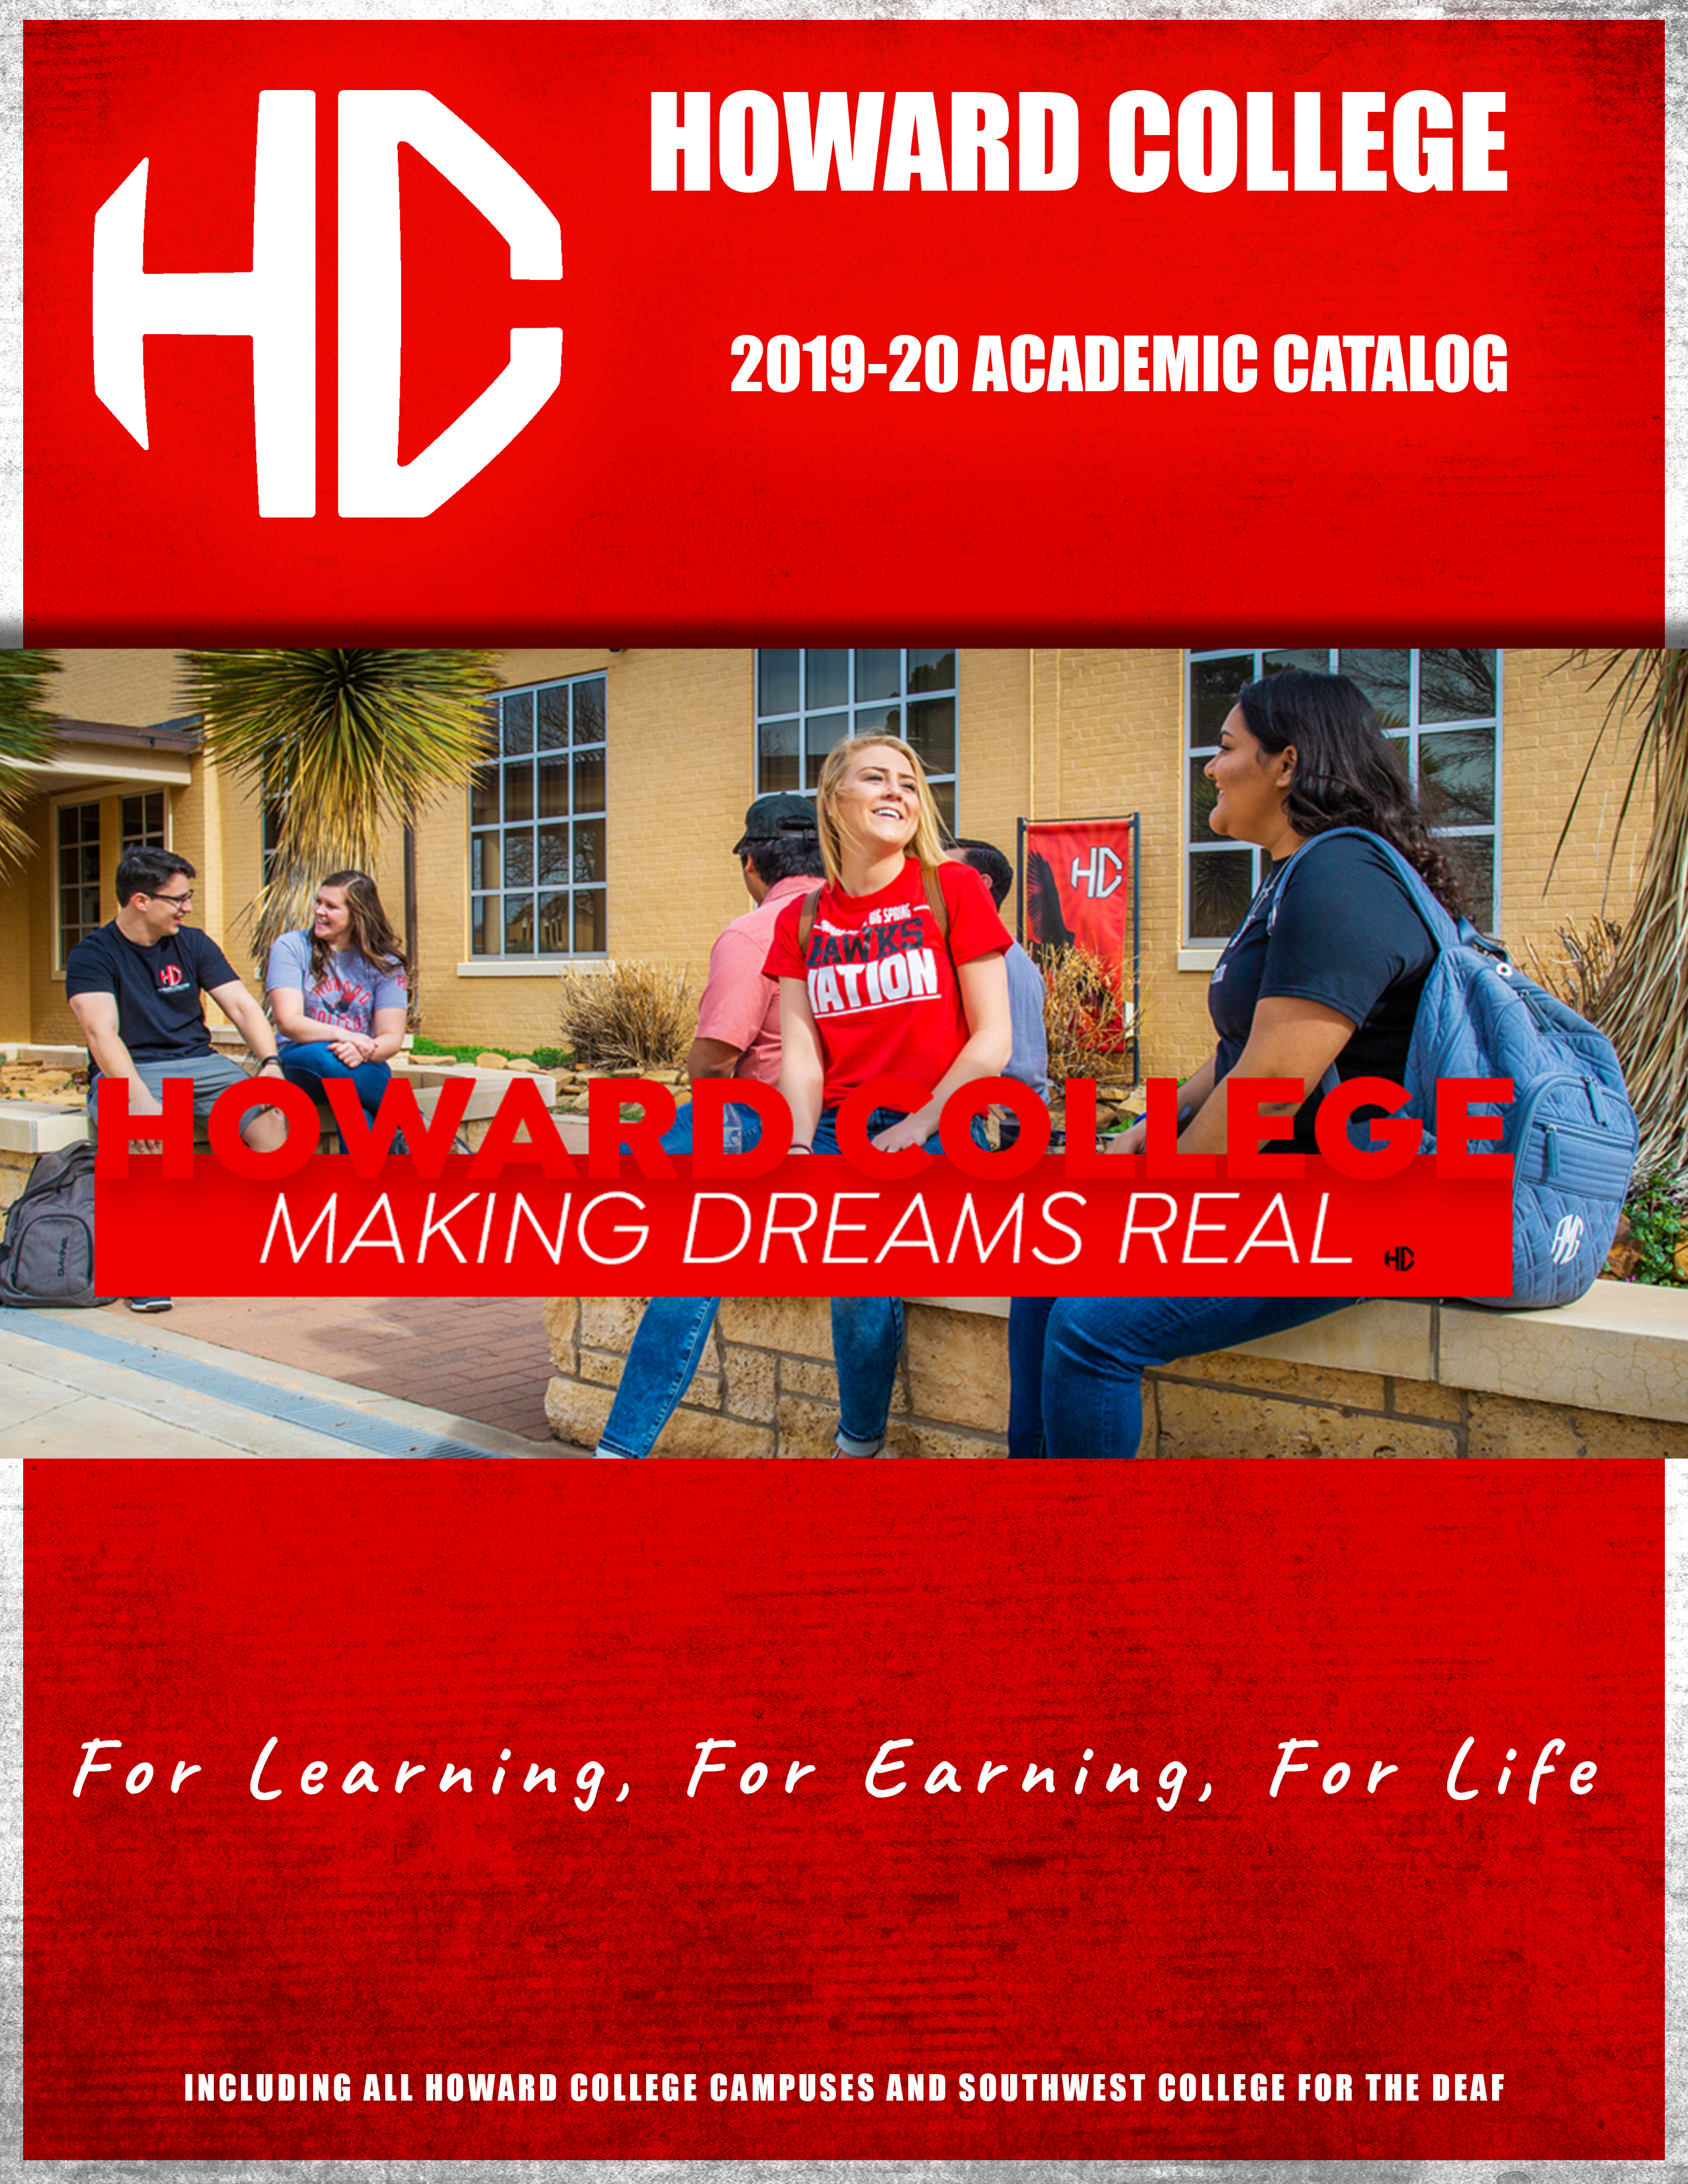 Howard College 2019-2020 Catalog